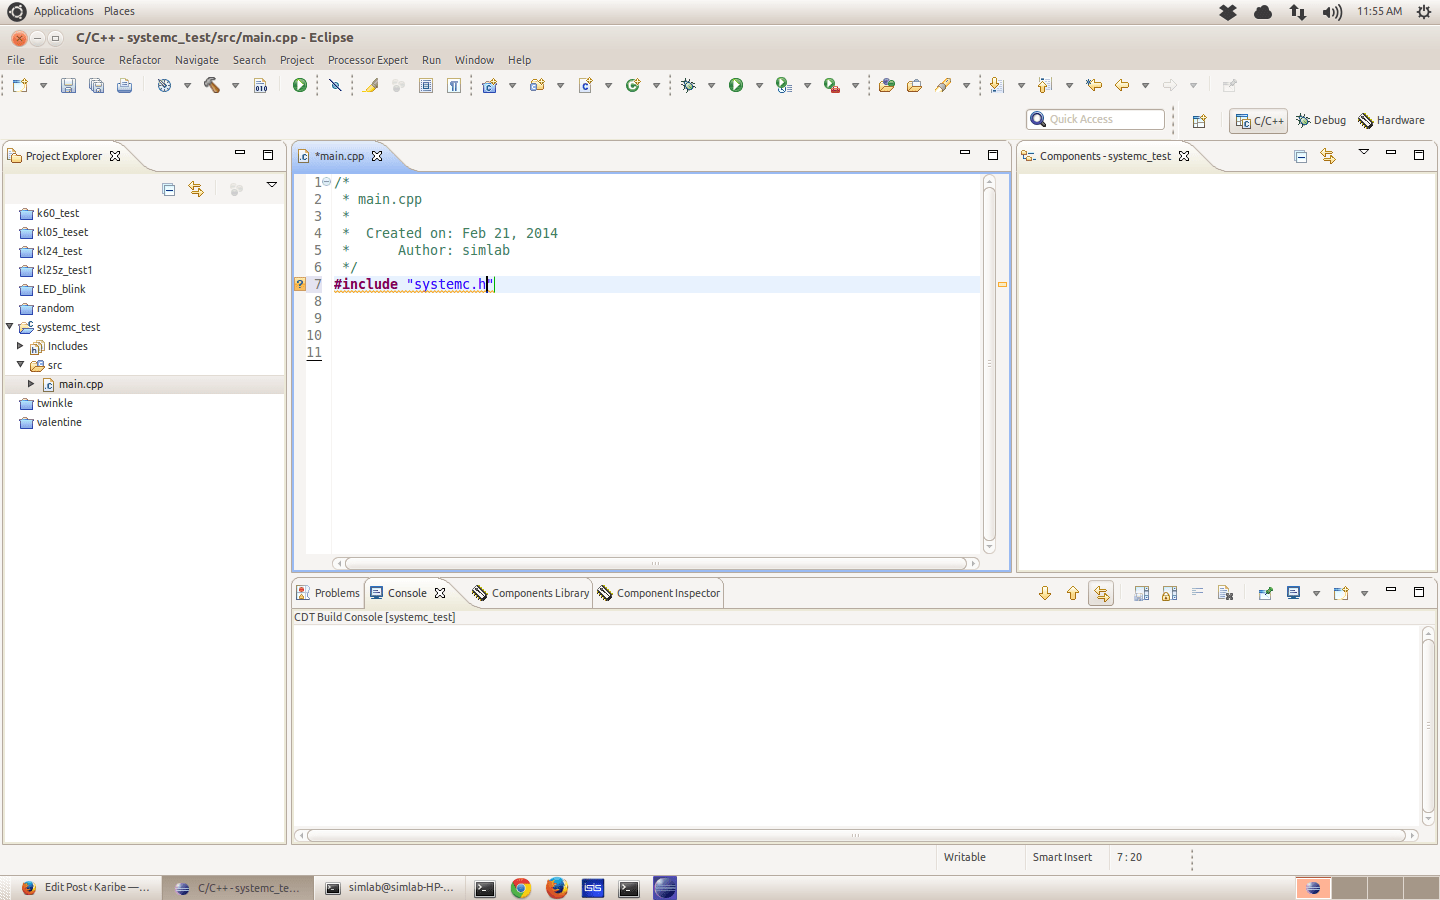 Setting up SystemC and Eclipse for C++ hardware simulation >> Karibe